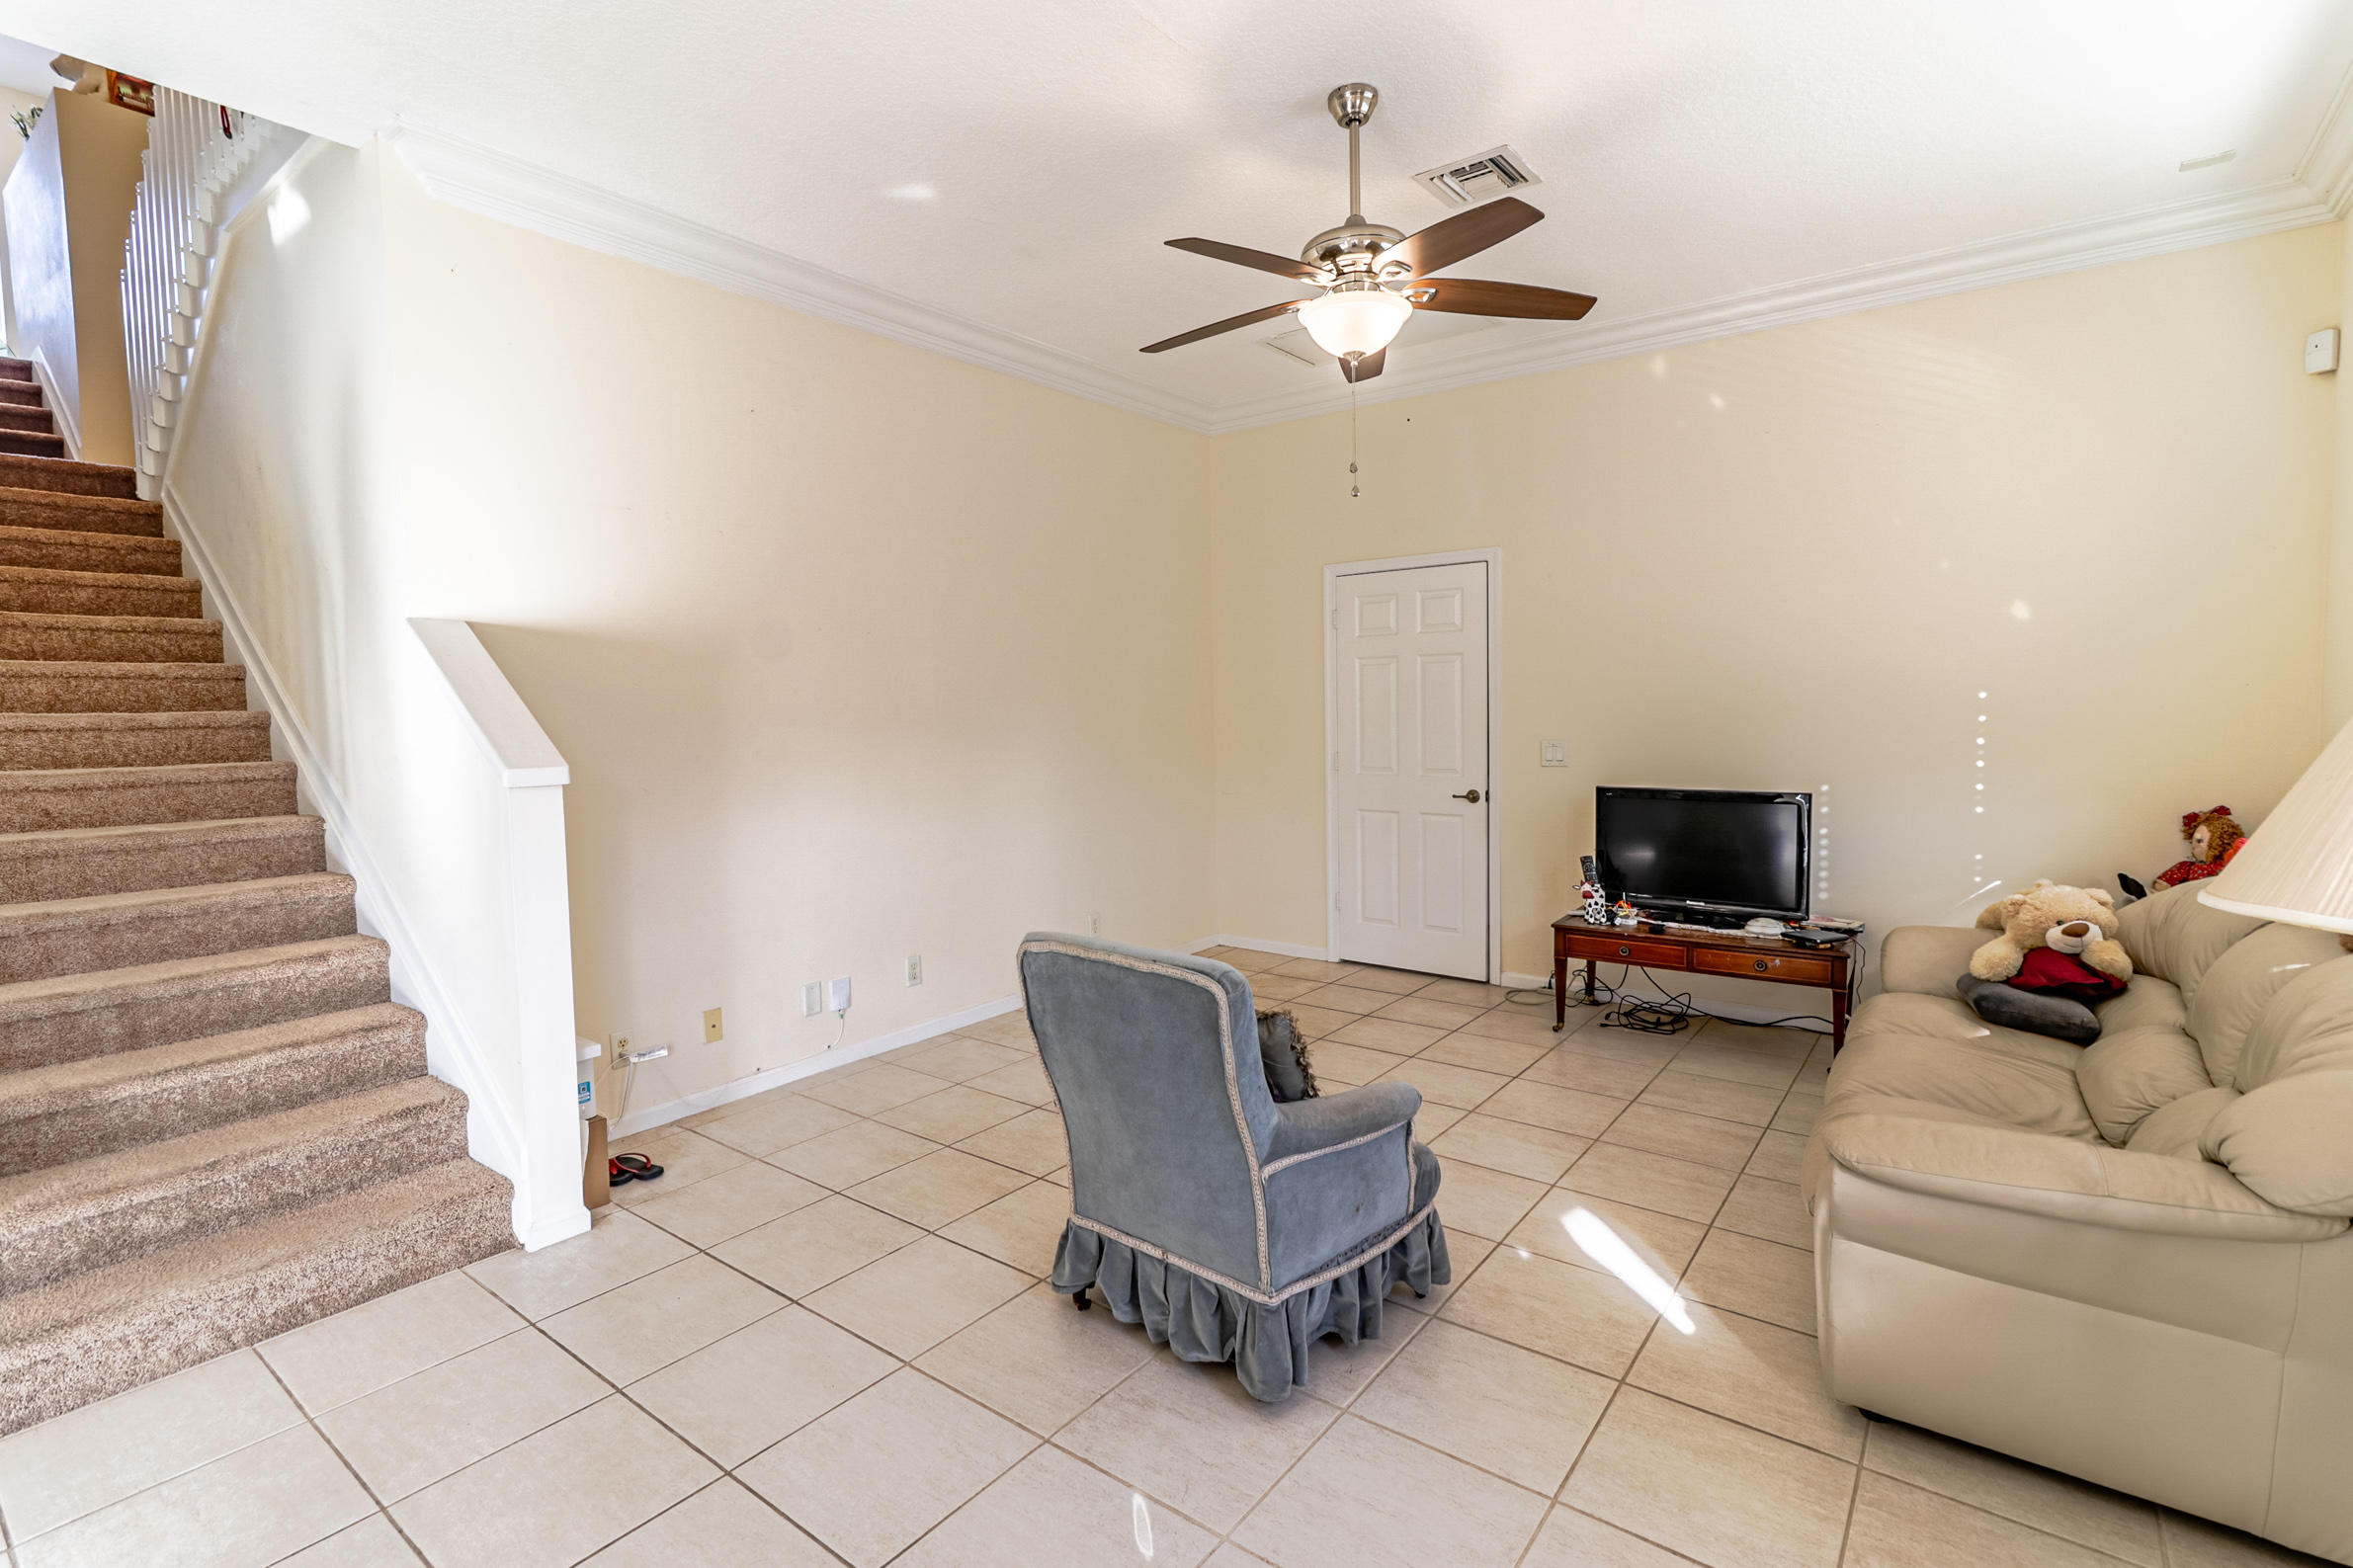 3048 El Camino Real West Palm Beach, FL 33409 small photo 8